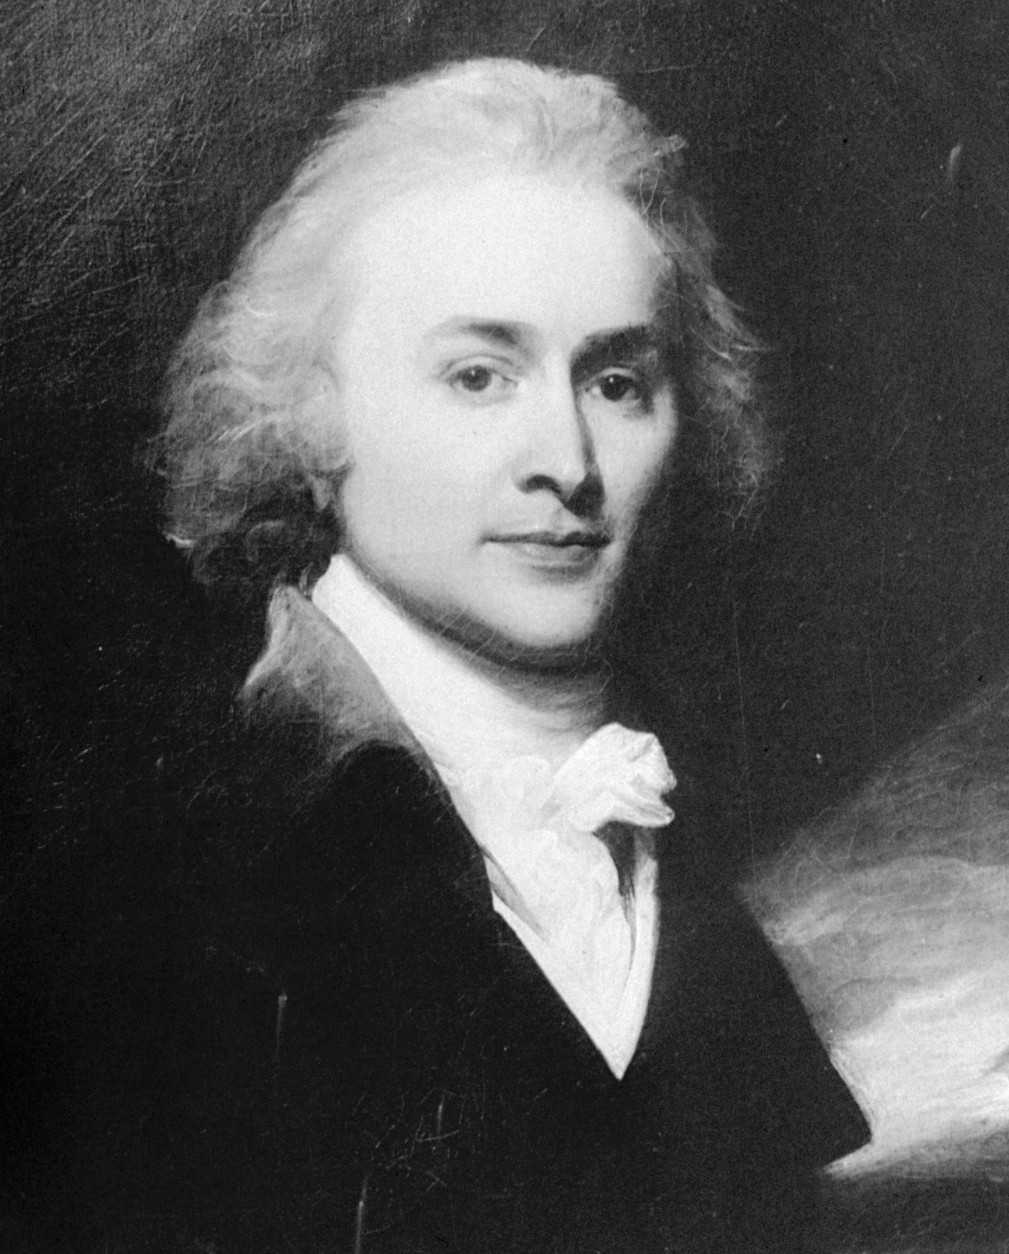 FILE- This undated file image shows a portrait painted by artist John Singleton Copley of John Quincy Adams, sixth president of the United States from 1825 to 1829. Historians noticed Adams' short diary entries are similar to modern day Twitter updates. So starting Wednesday, Aug. 5, 2009, the Massachusetts Historical Society begins posting Twitter updates from his diary entries 200 years ago.  (AP Photo)